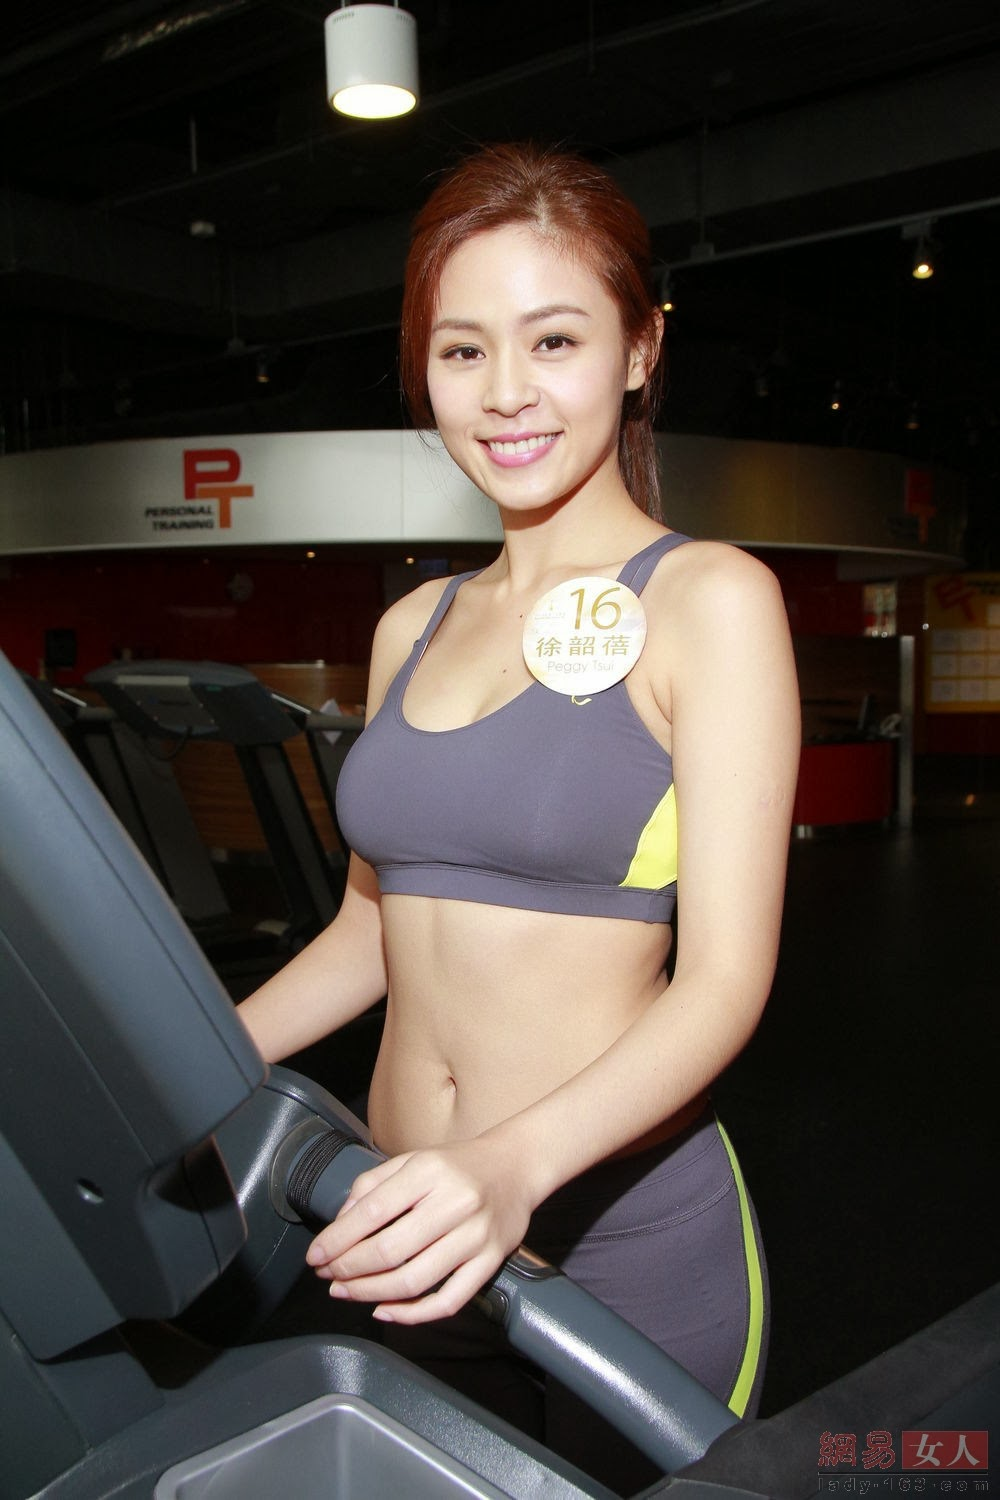 Even Miss nude hong kong contestants certainly. opinion